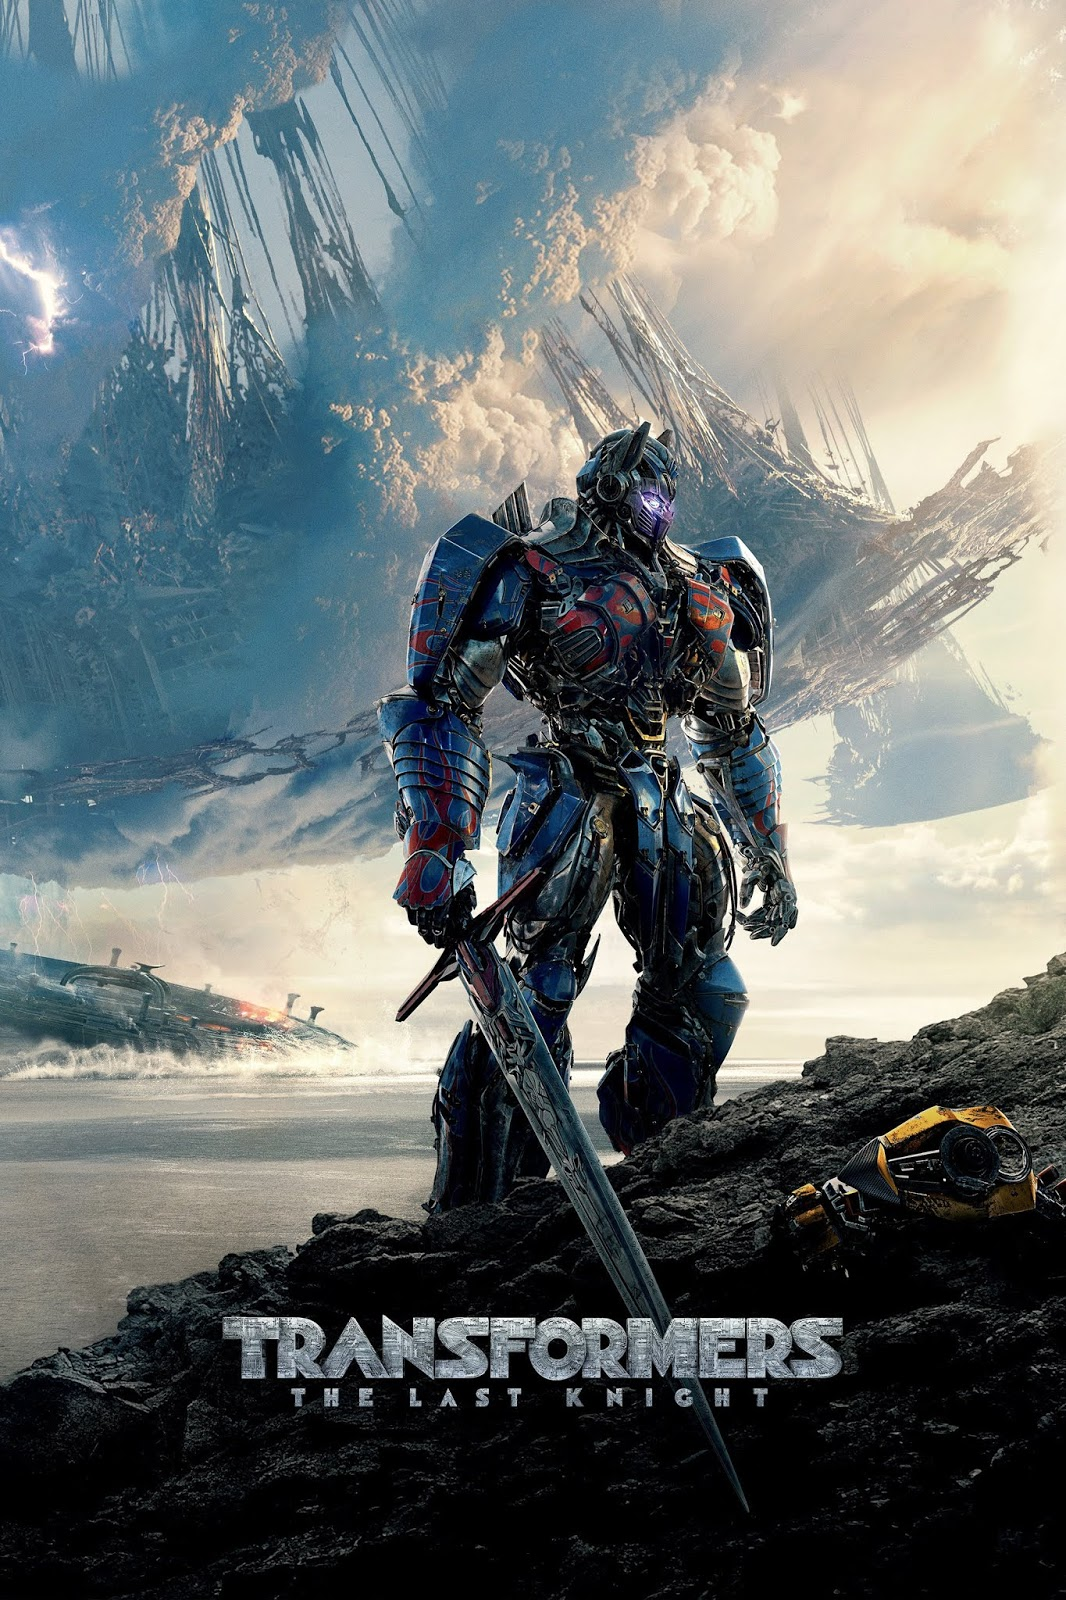 TRANSFORMERS 5 THE LAST KNIGHT (2017) MOVIE TAMIL DUBBED HD